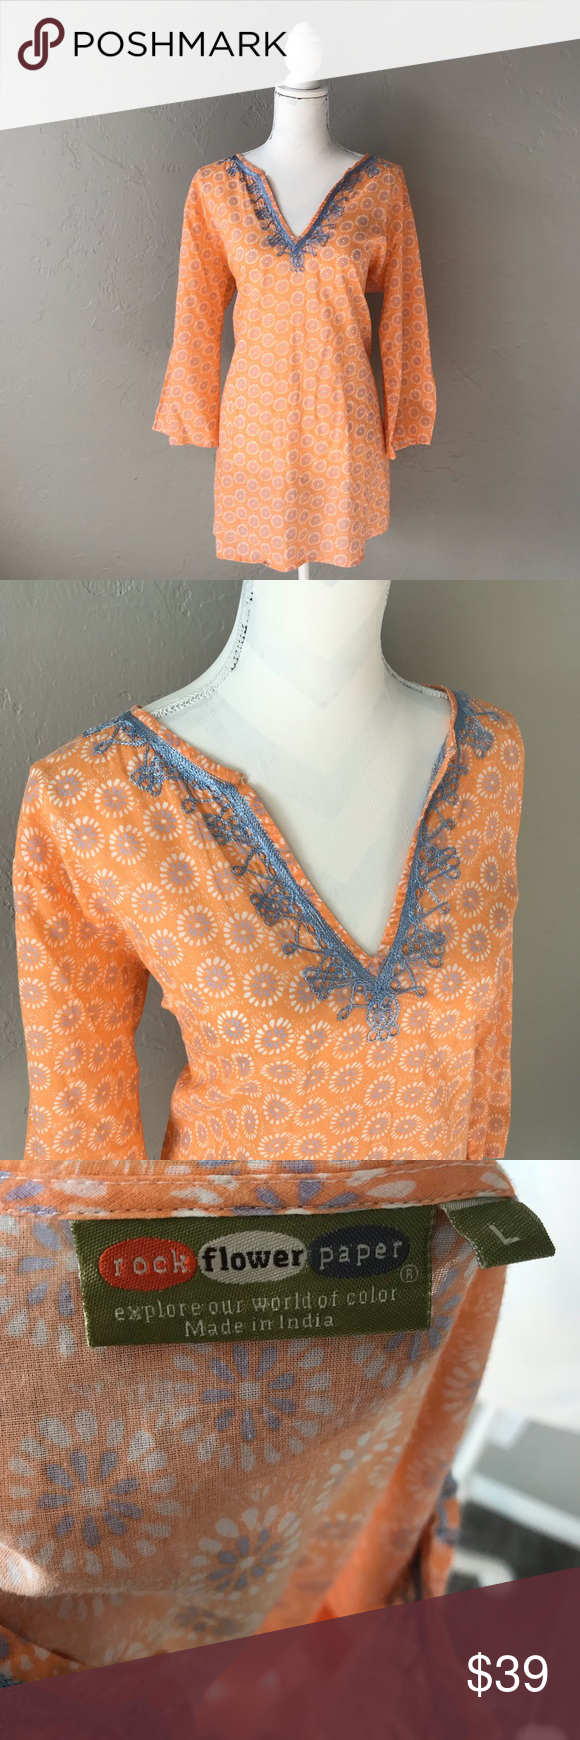 Rock Flower Paper Colorful Floral Tunic Beautiful And Cheery Tunic